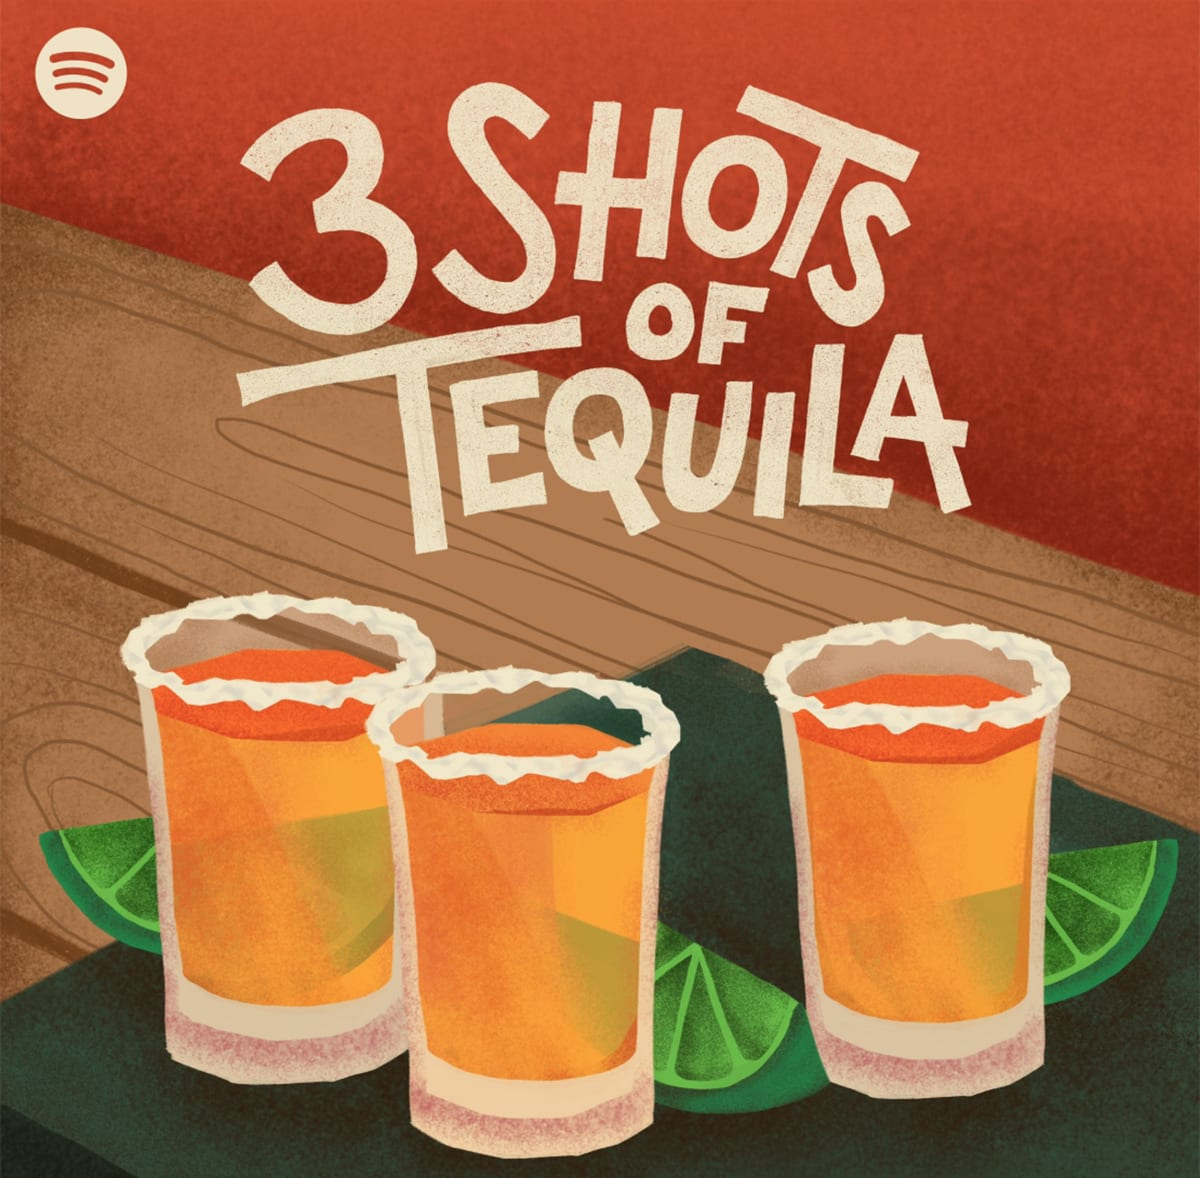 3 shots of tequila 3 shots of tequila spotify 3 shots of tequila podcast keith dube marvin abbey tazer black